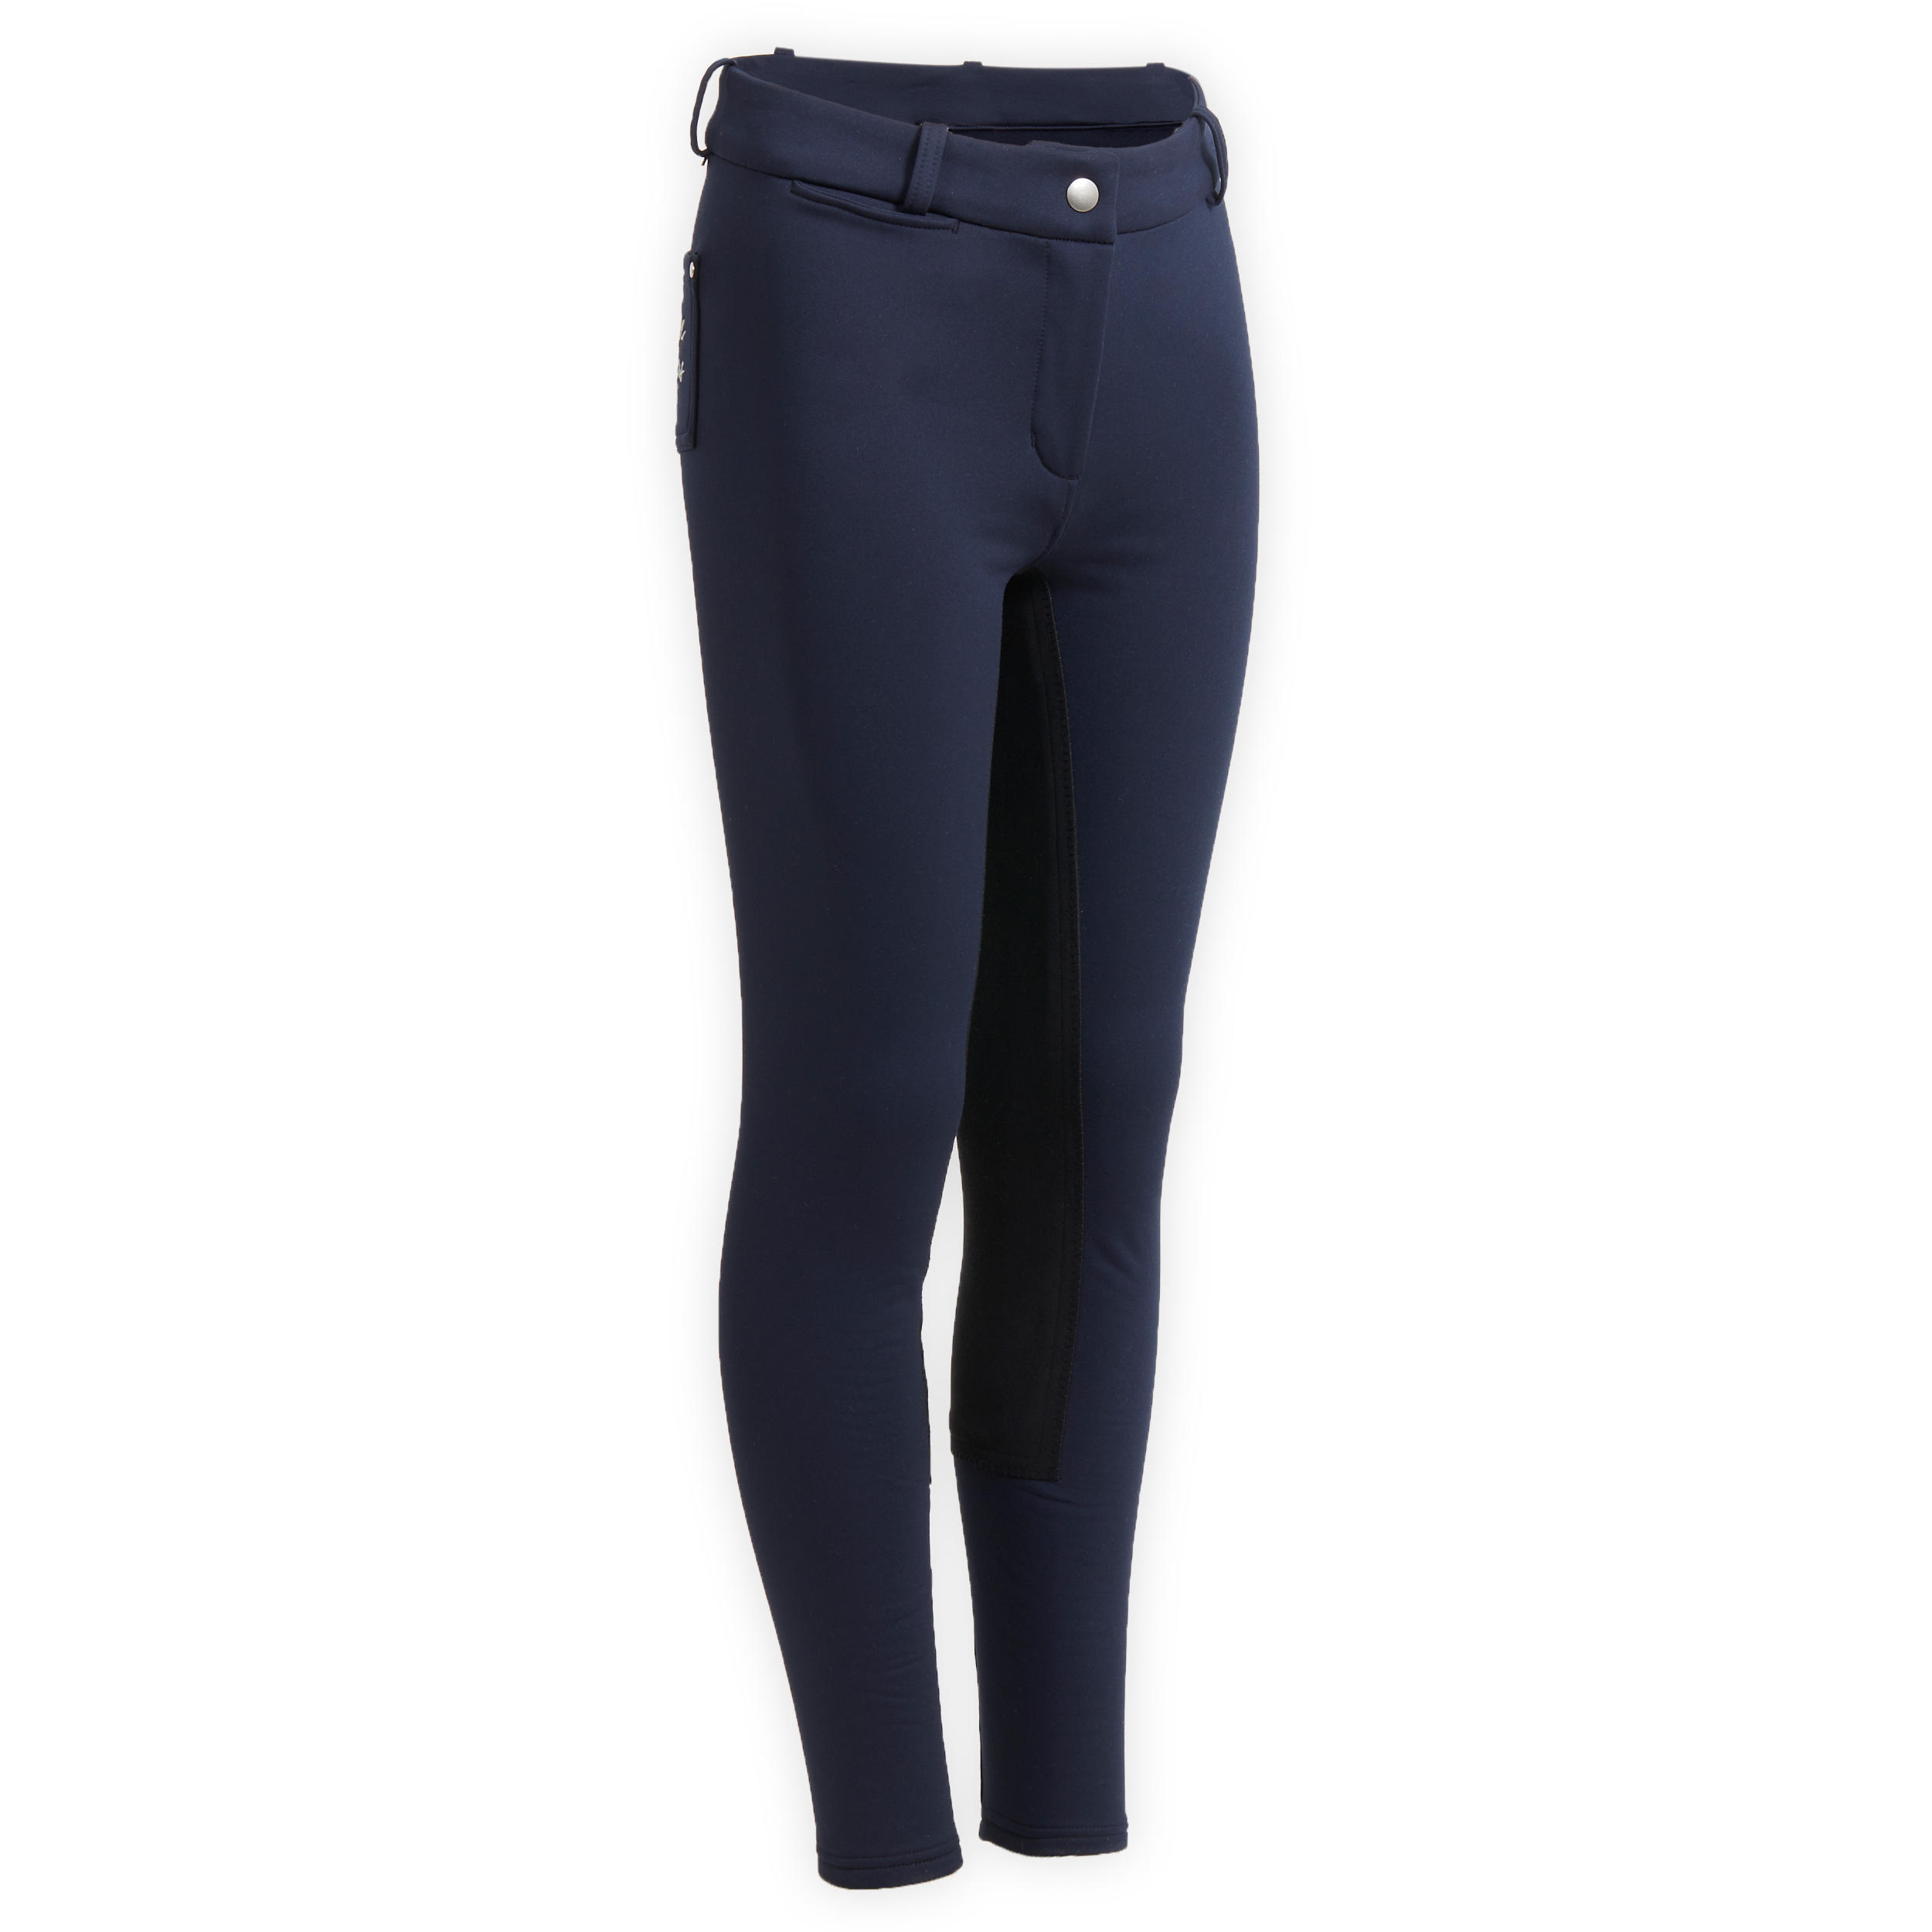 Pantalon 180 WARM Damă imagine produs